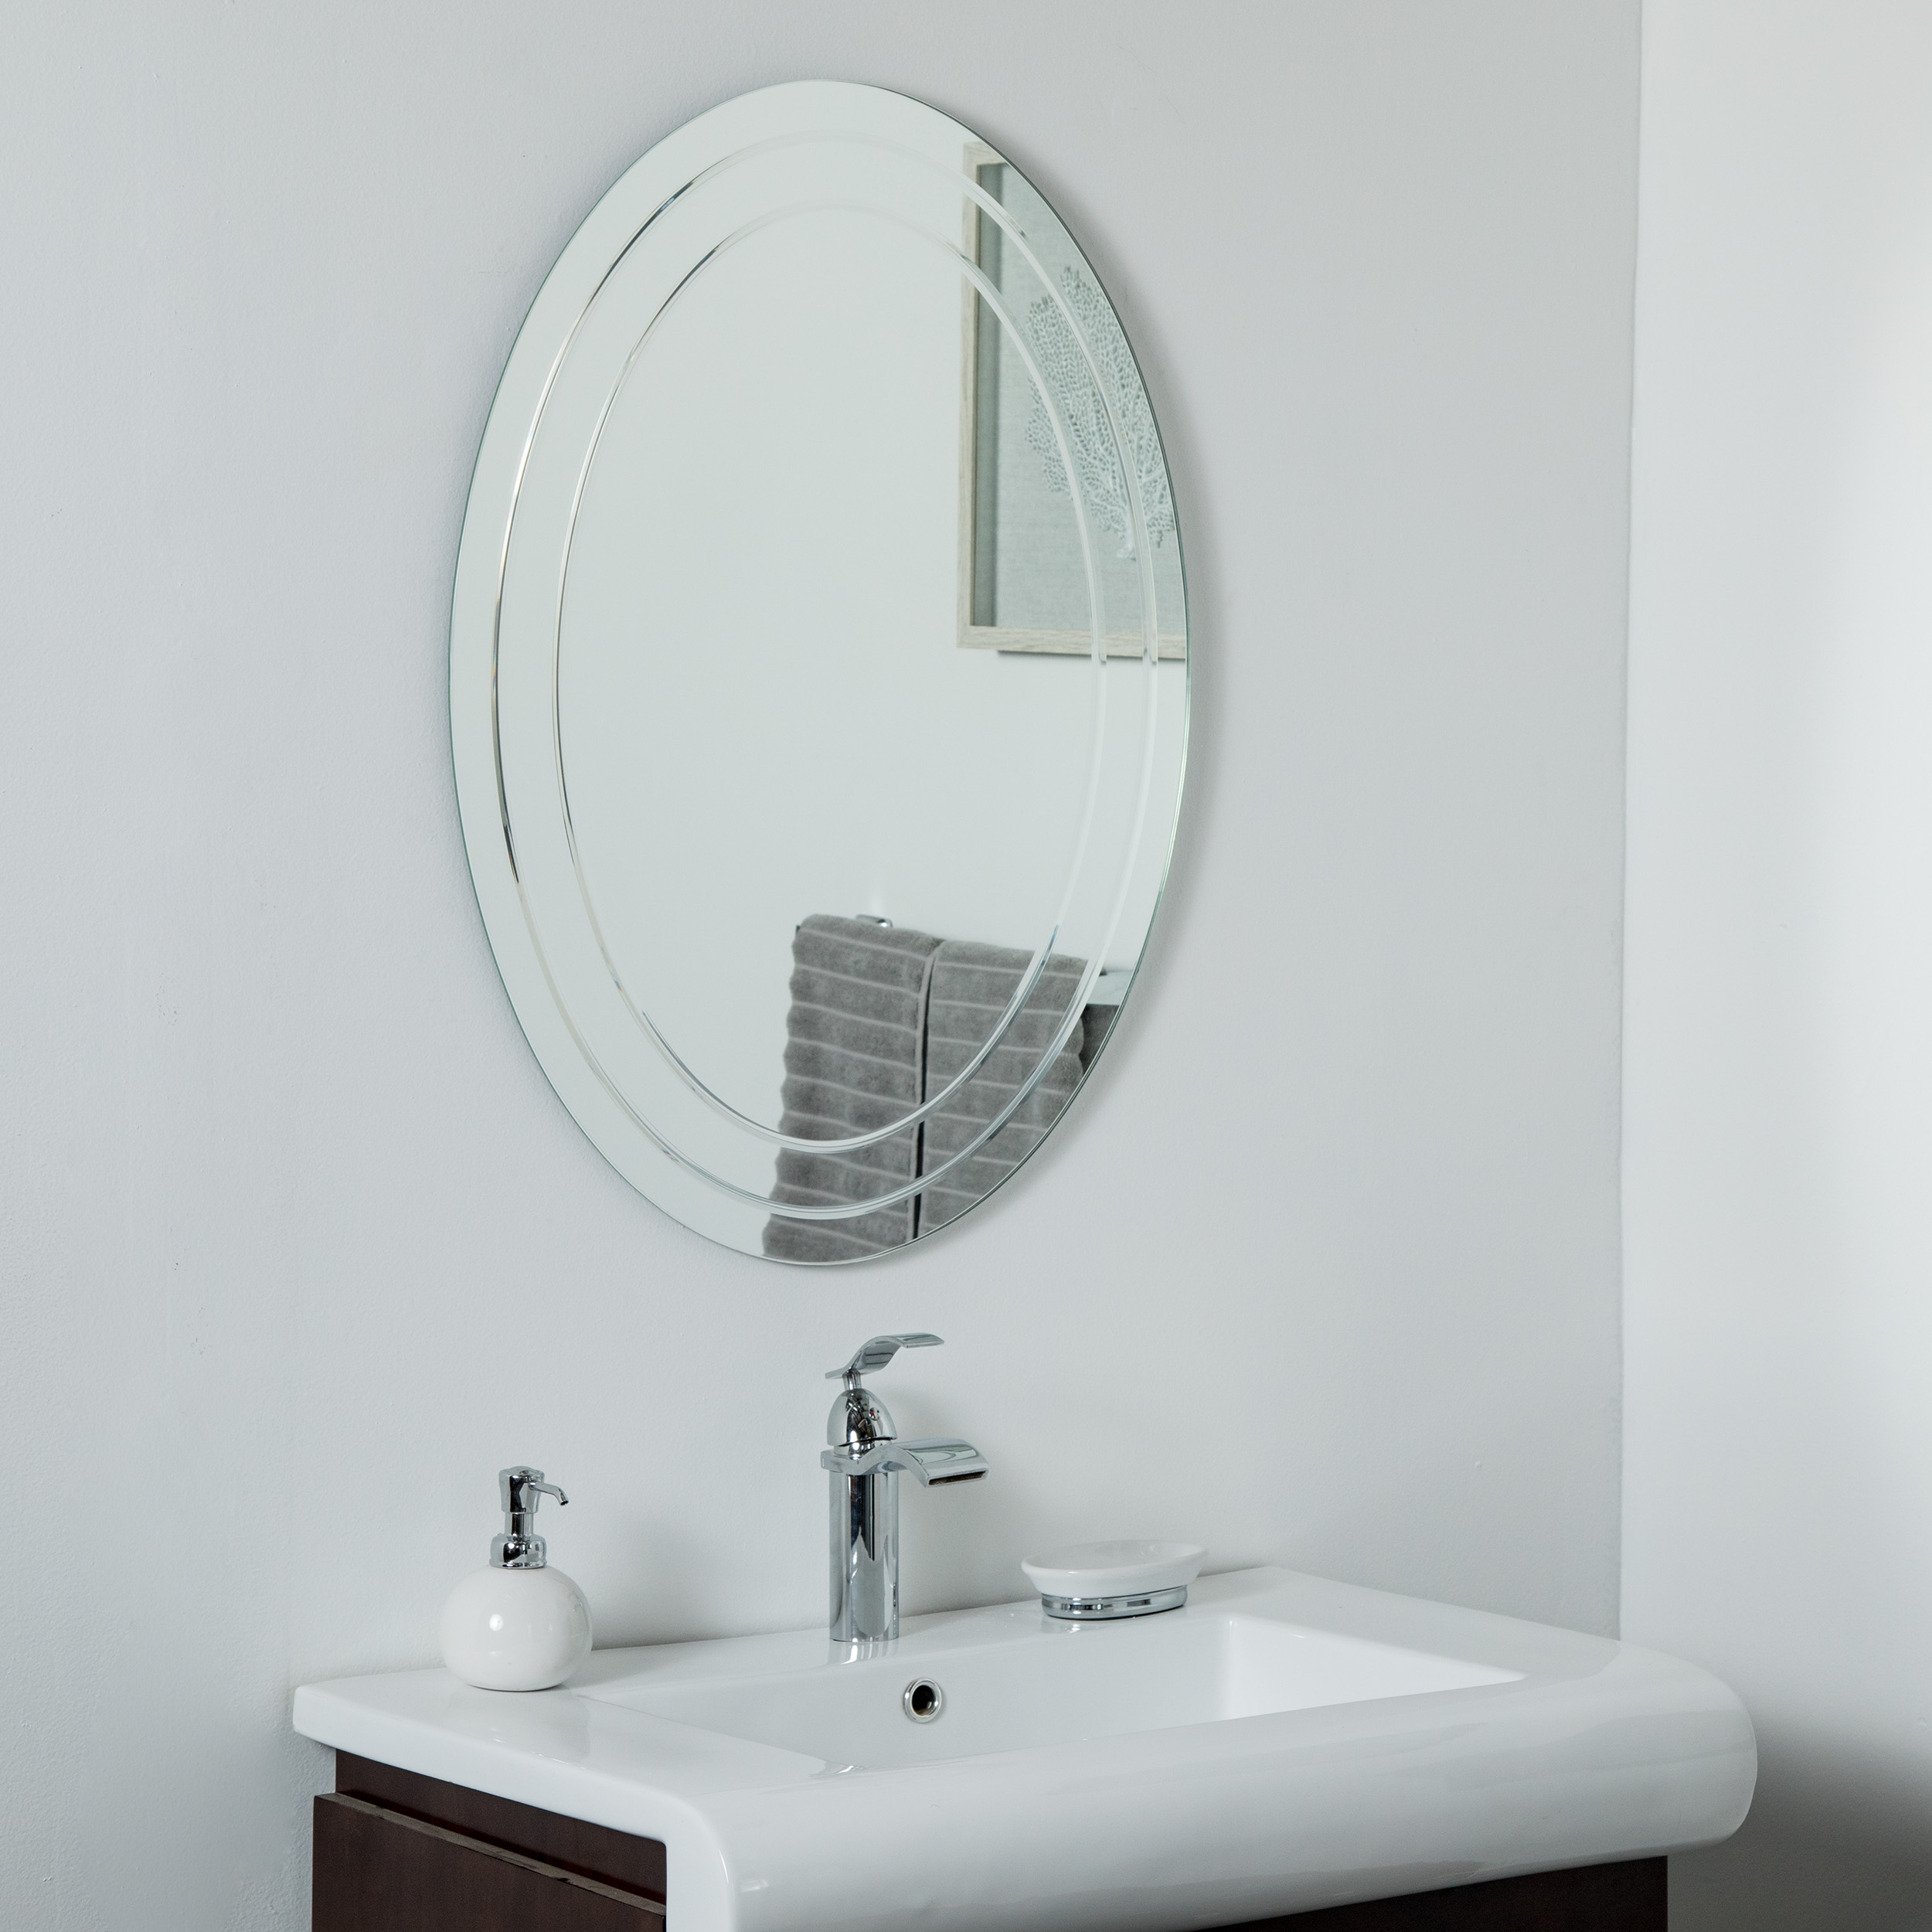 Decor Wonderland Tate Frameless Oval Mirror 31 5 In X 23 6 In Lowe S Canada